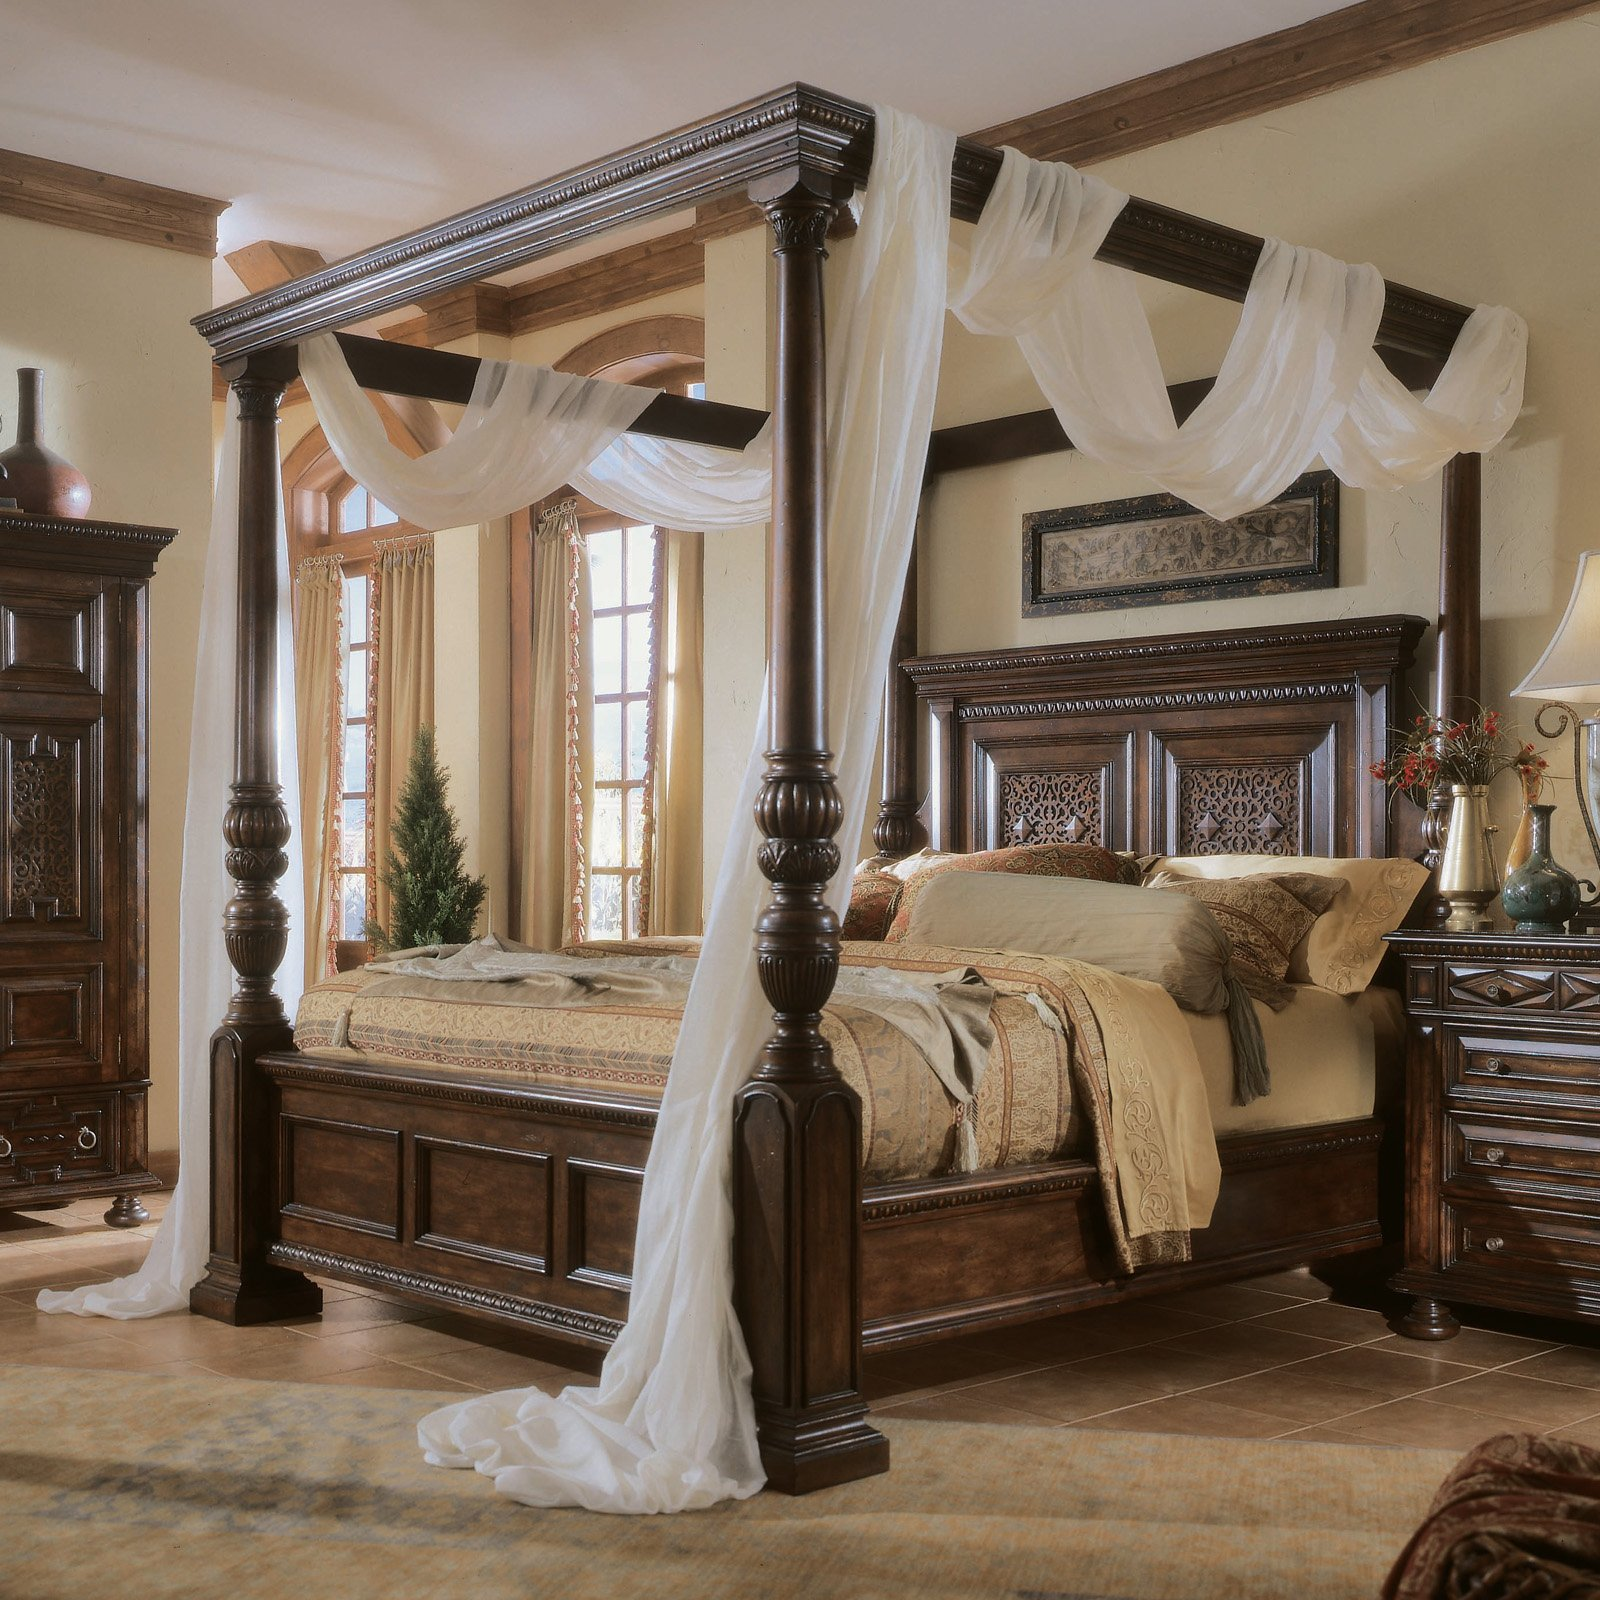 Canopy Bed Ideas For Adults On A Budget